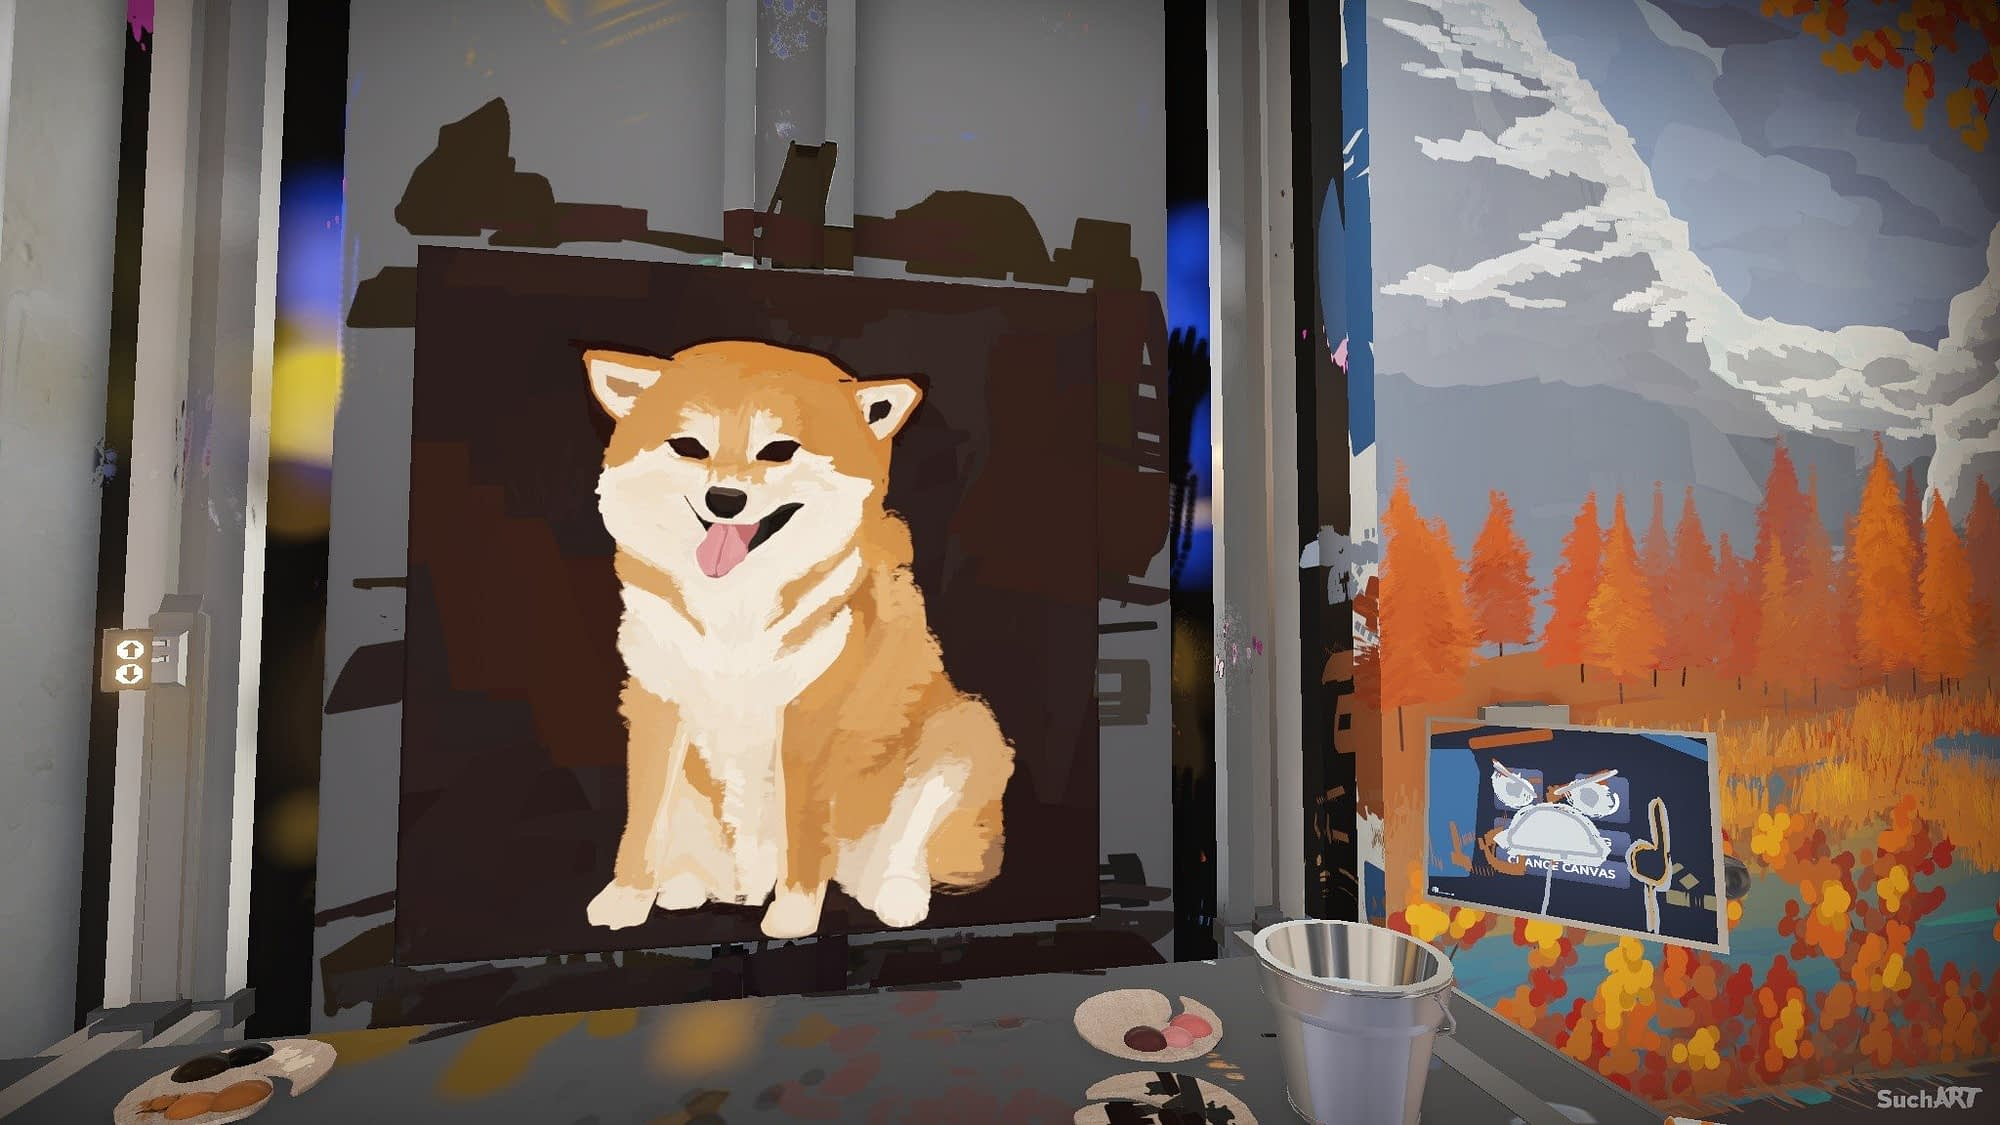 Games on Steam: A Perfect Painting